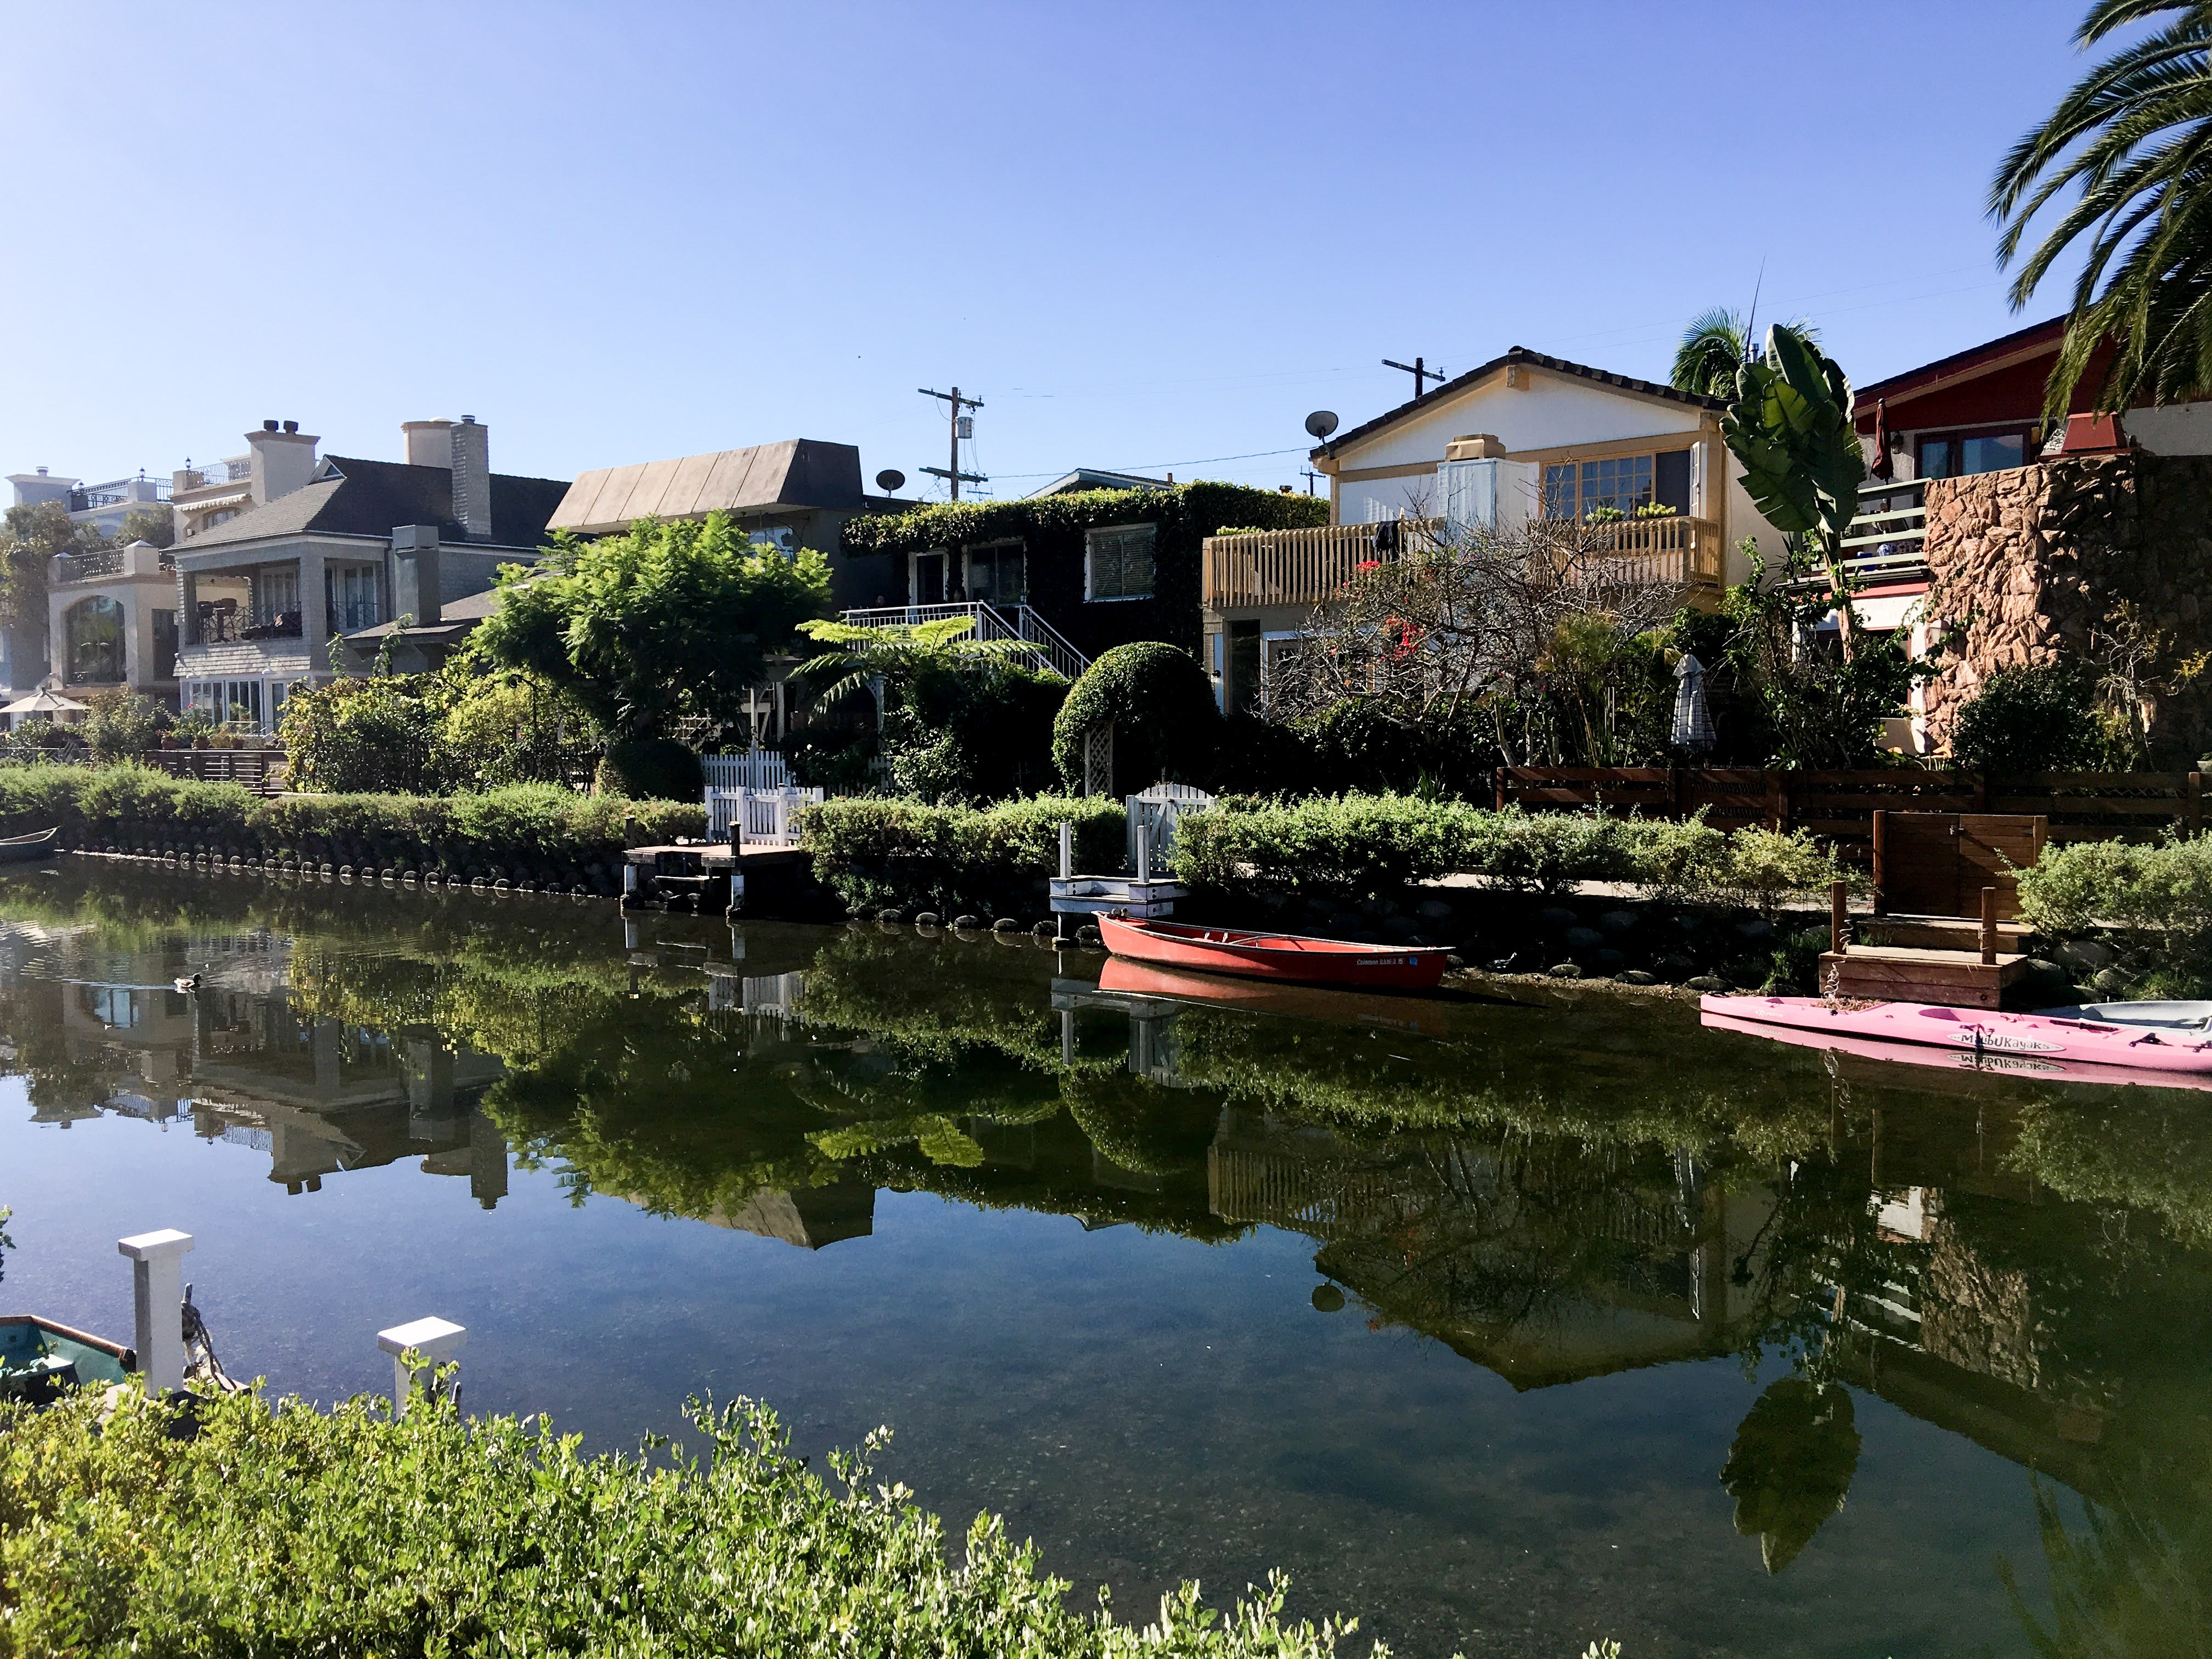 The Venice Canals are a popular place for tourists to visit.